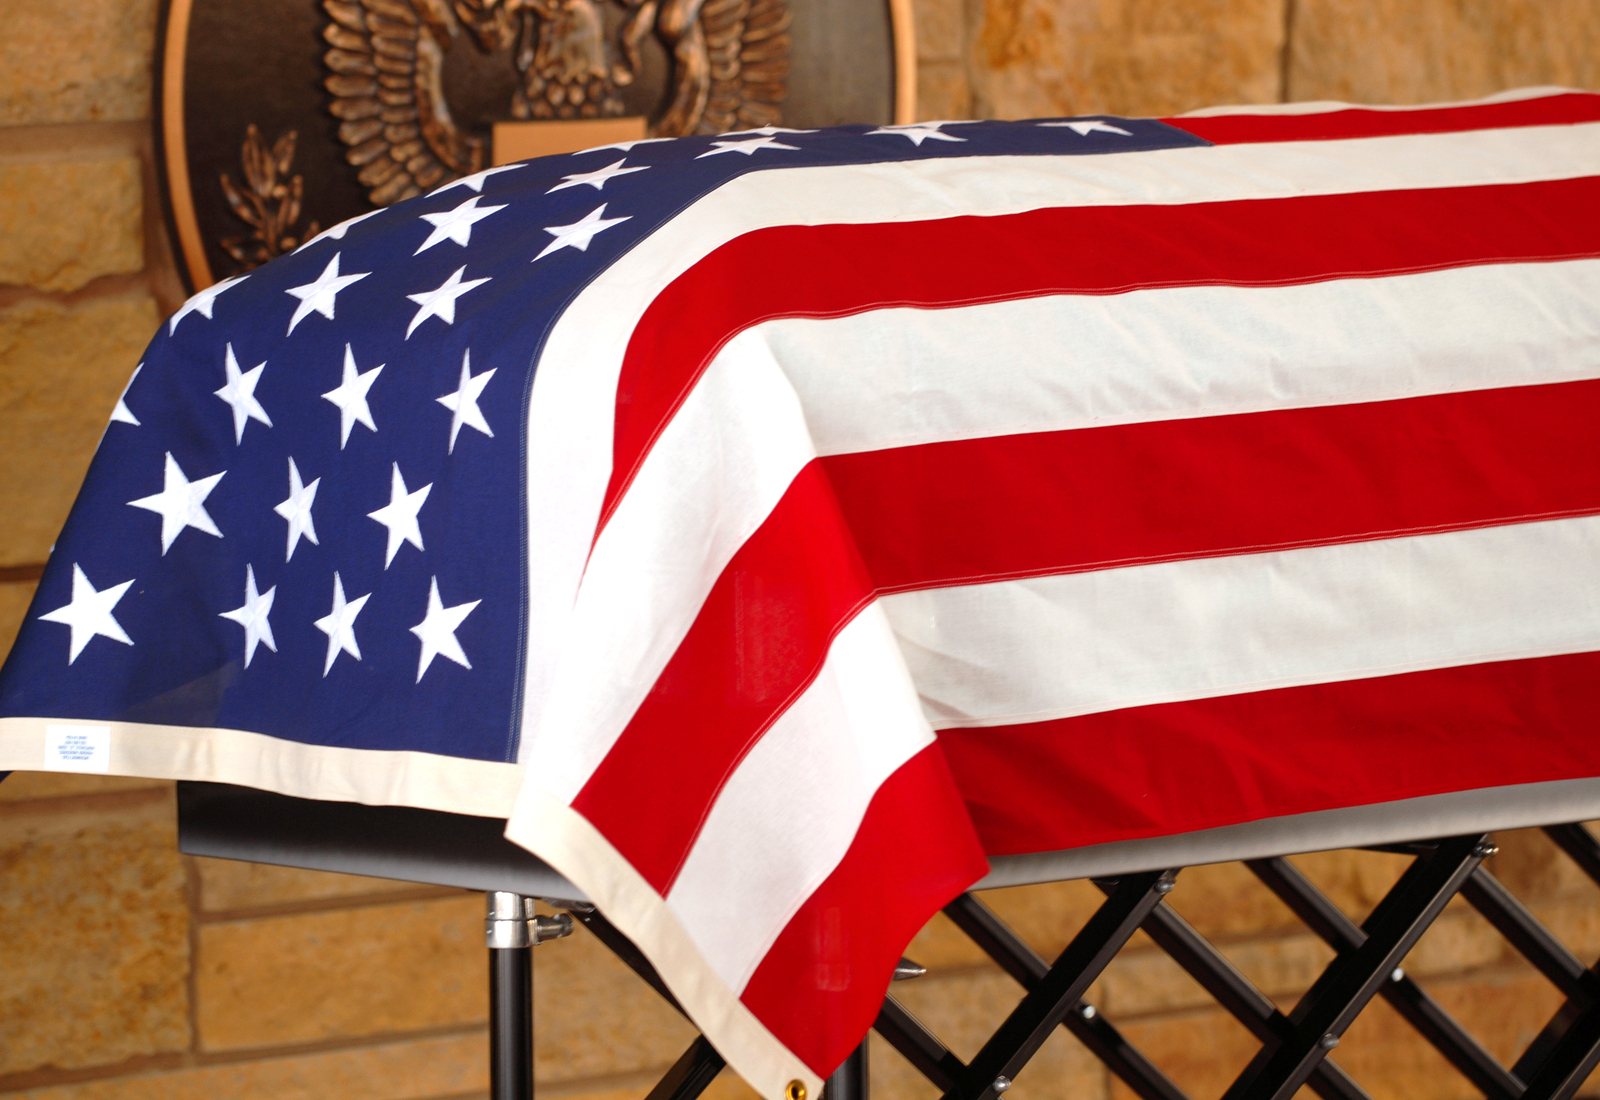 A New Low in America:  Making the Death of an American Soldier a Political Opportunity